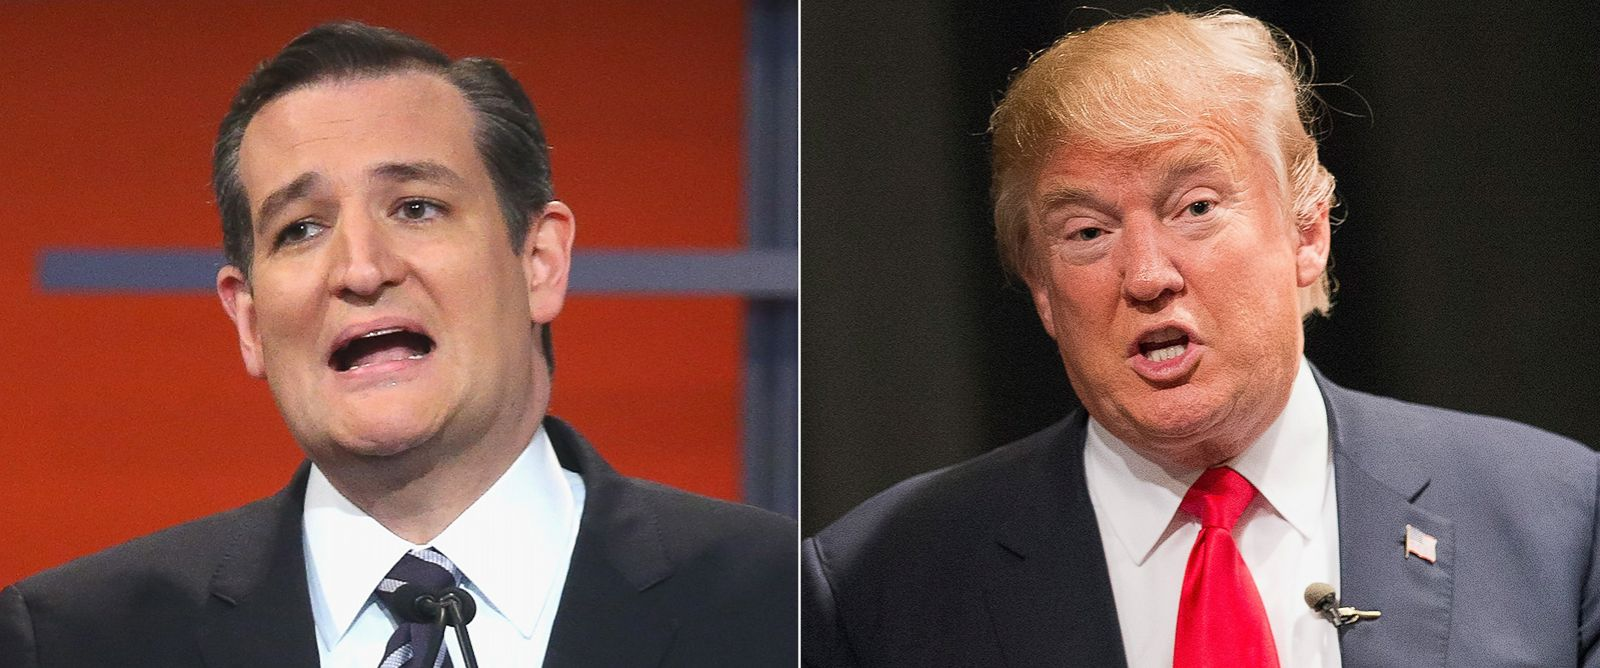 PHOTO: (L-R) Republican presidential candidate Sen. Ted Cruz during the first Republican presidential debate in Cleveland, Ohio, Aug. 6, 2015. | Republican presidential candidate Donald Trump in Newton, Iowa, Nov. 19, 2015.